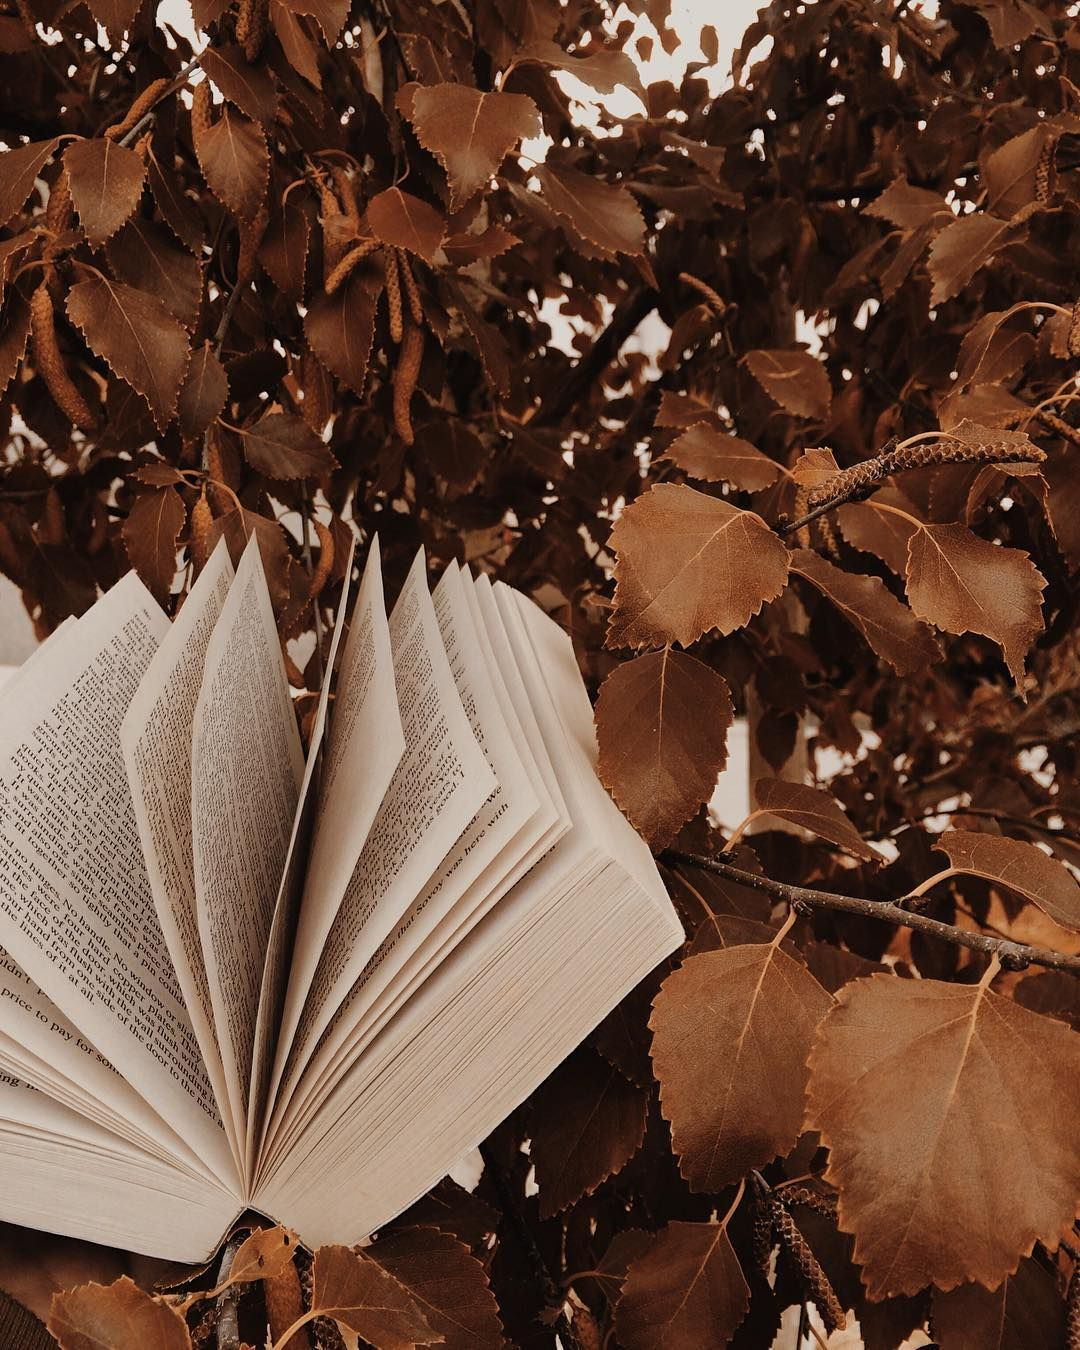 5 FALL BOOKS TO READ